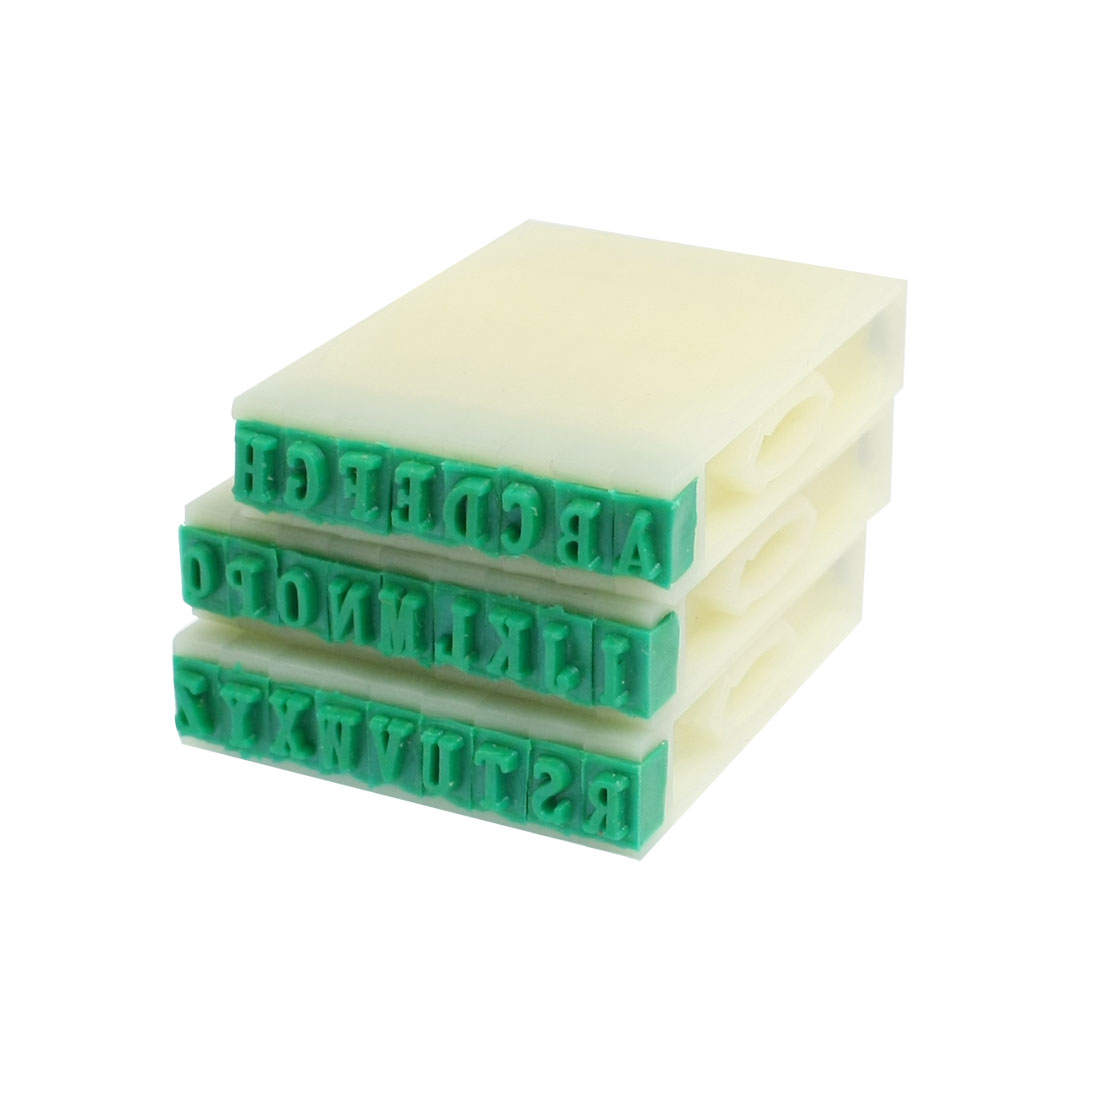 3mm x 5mm Green Rubber Head 26 Alphabets Combination Stamp Block Set